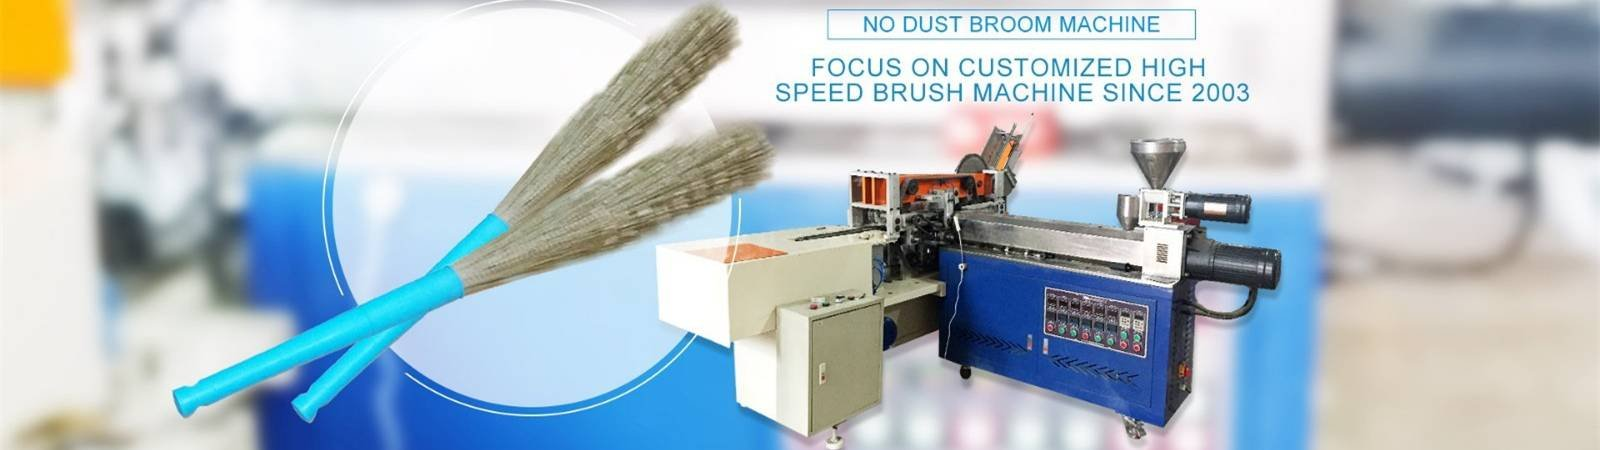 category-Wire Brush-meixin Brush Making Machine Factory-MEIXIN-img